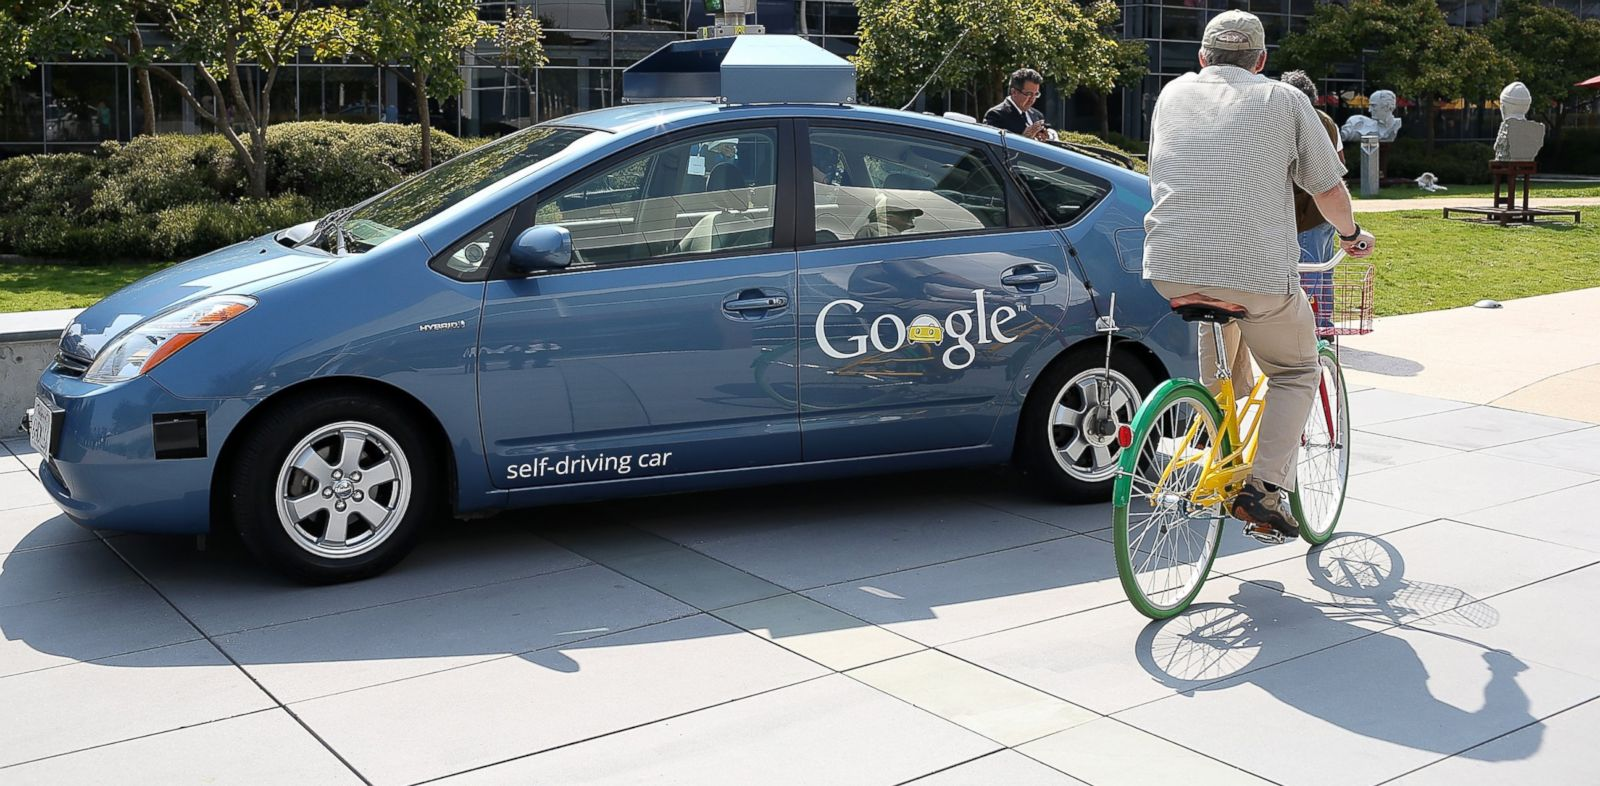 PHOTO: A bicyclist rides by a Google self-driving car at the Google headquarters, Sept. 25, 2012, in Mountain View, California.